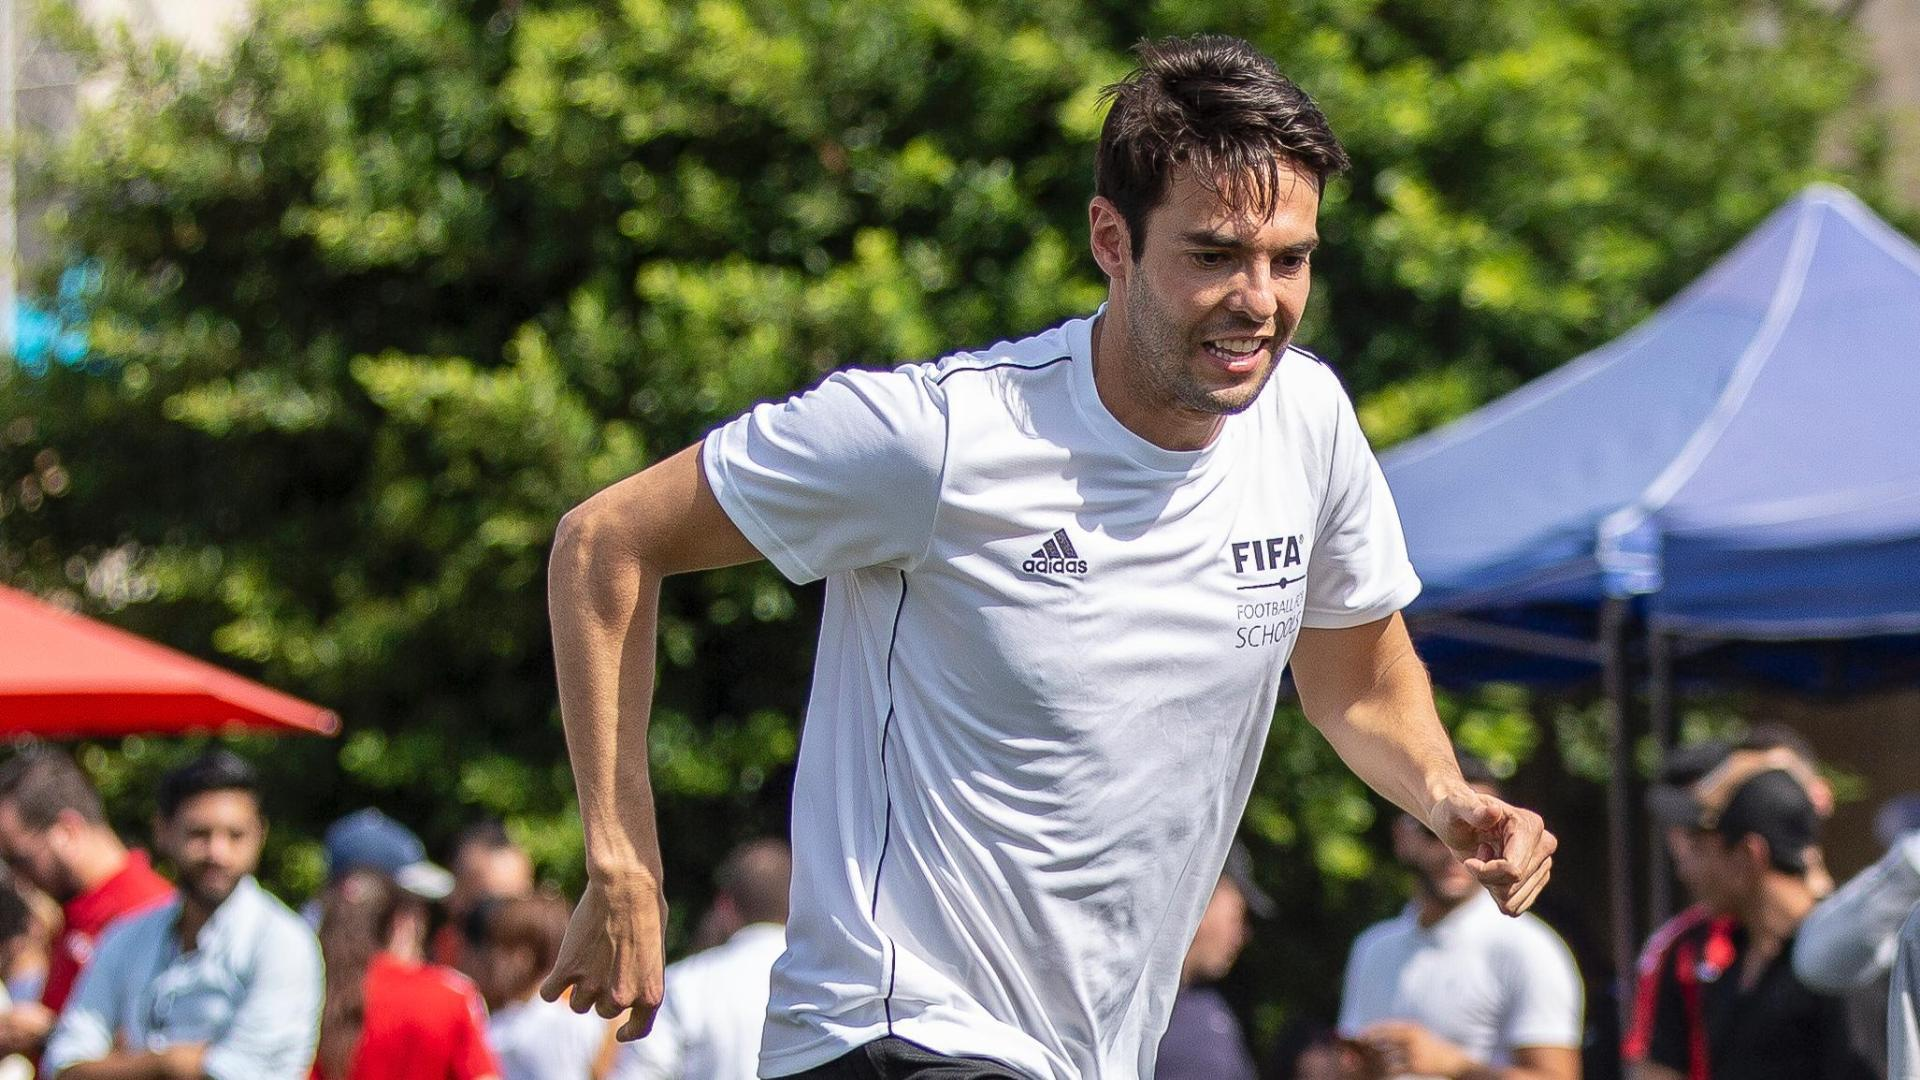 Kaka scores a worldy & gets nutmegged in six-a-side game